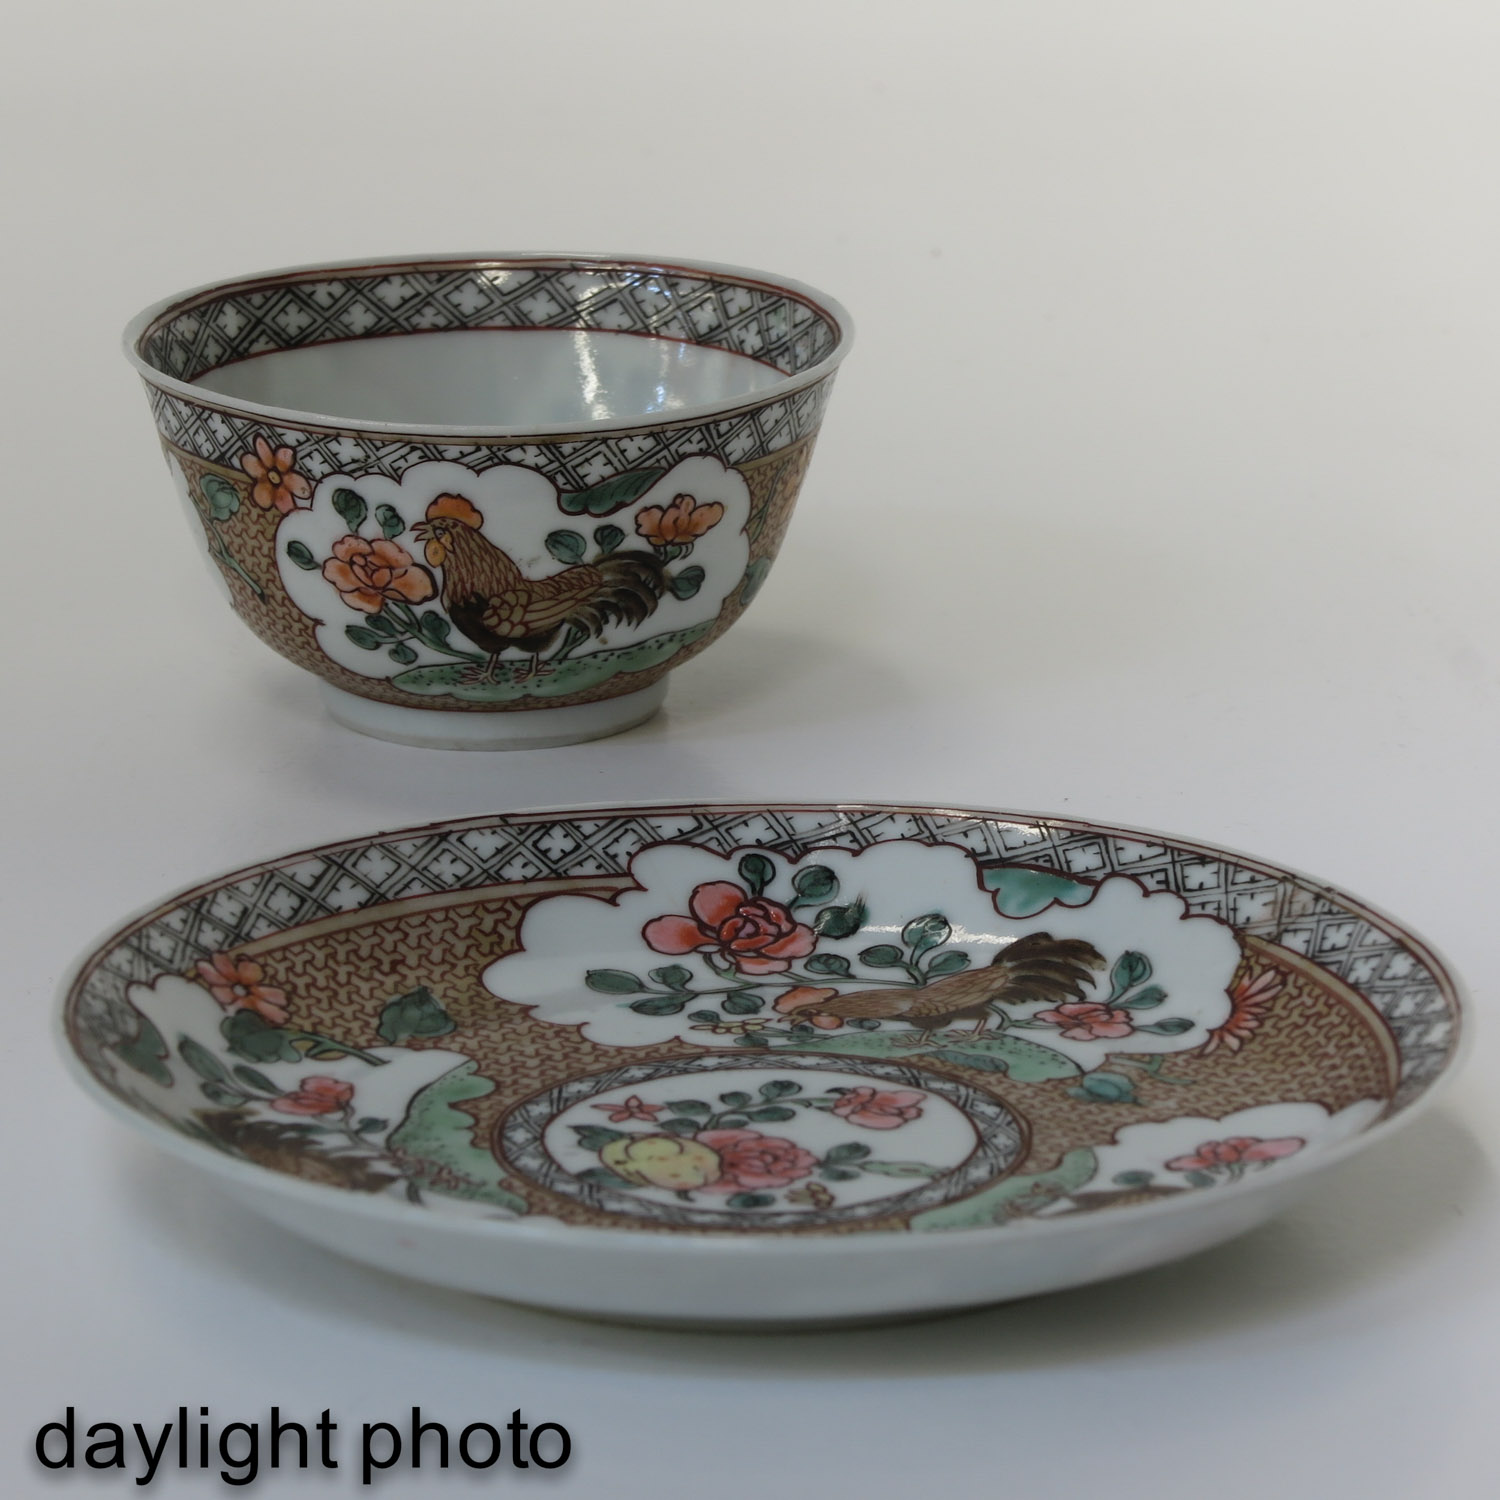 A Rooster Decor Cup and Saucer - Image 7 of 10